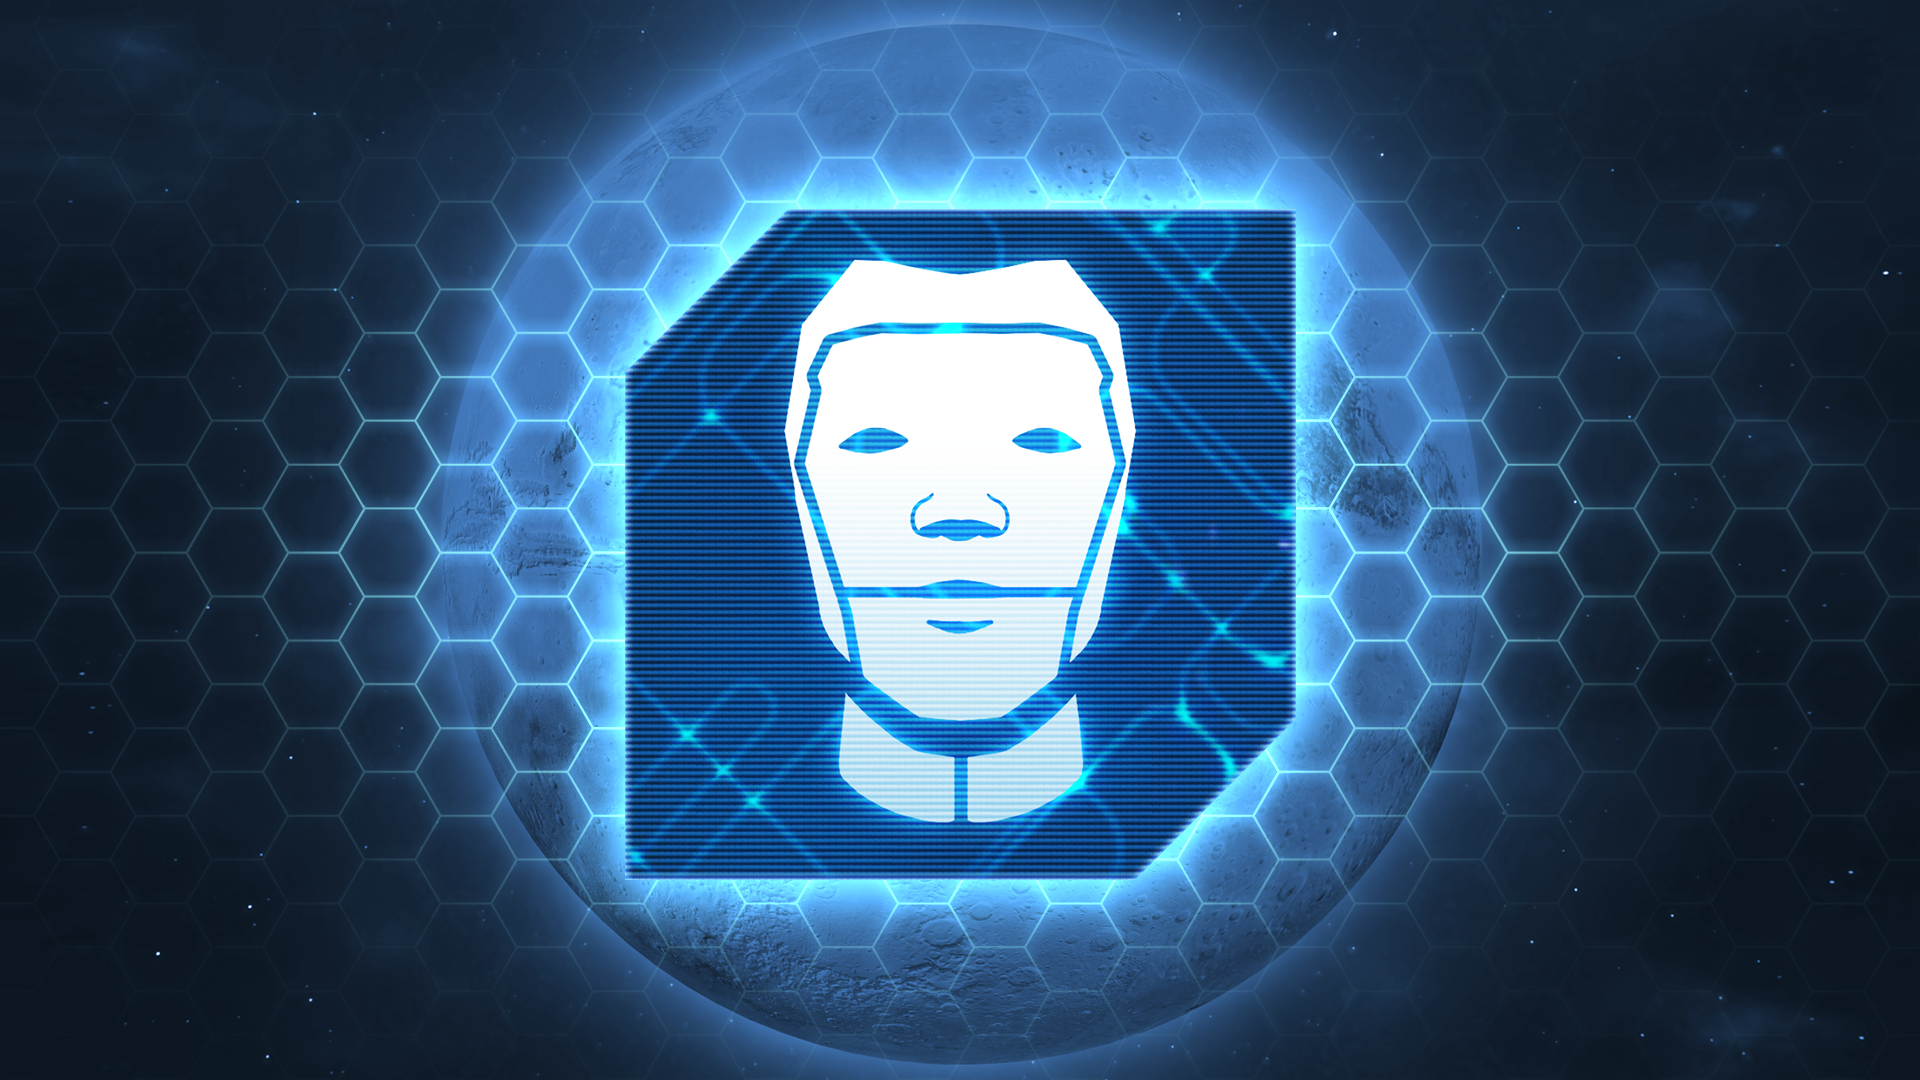 Icon for The Positronic Man